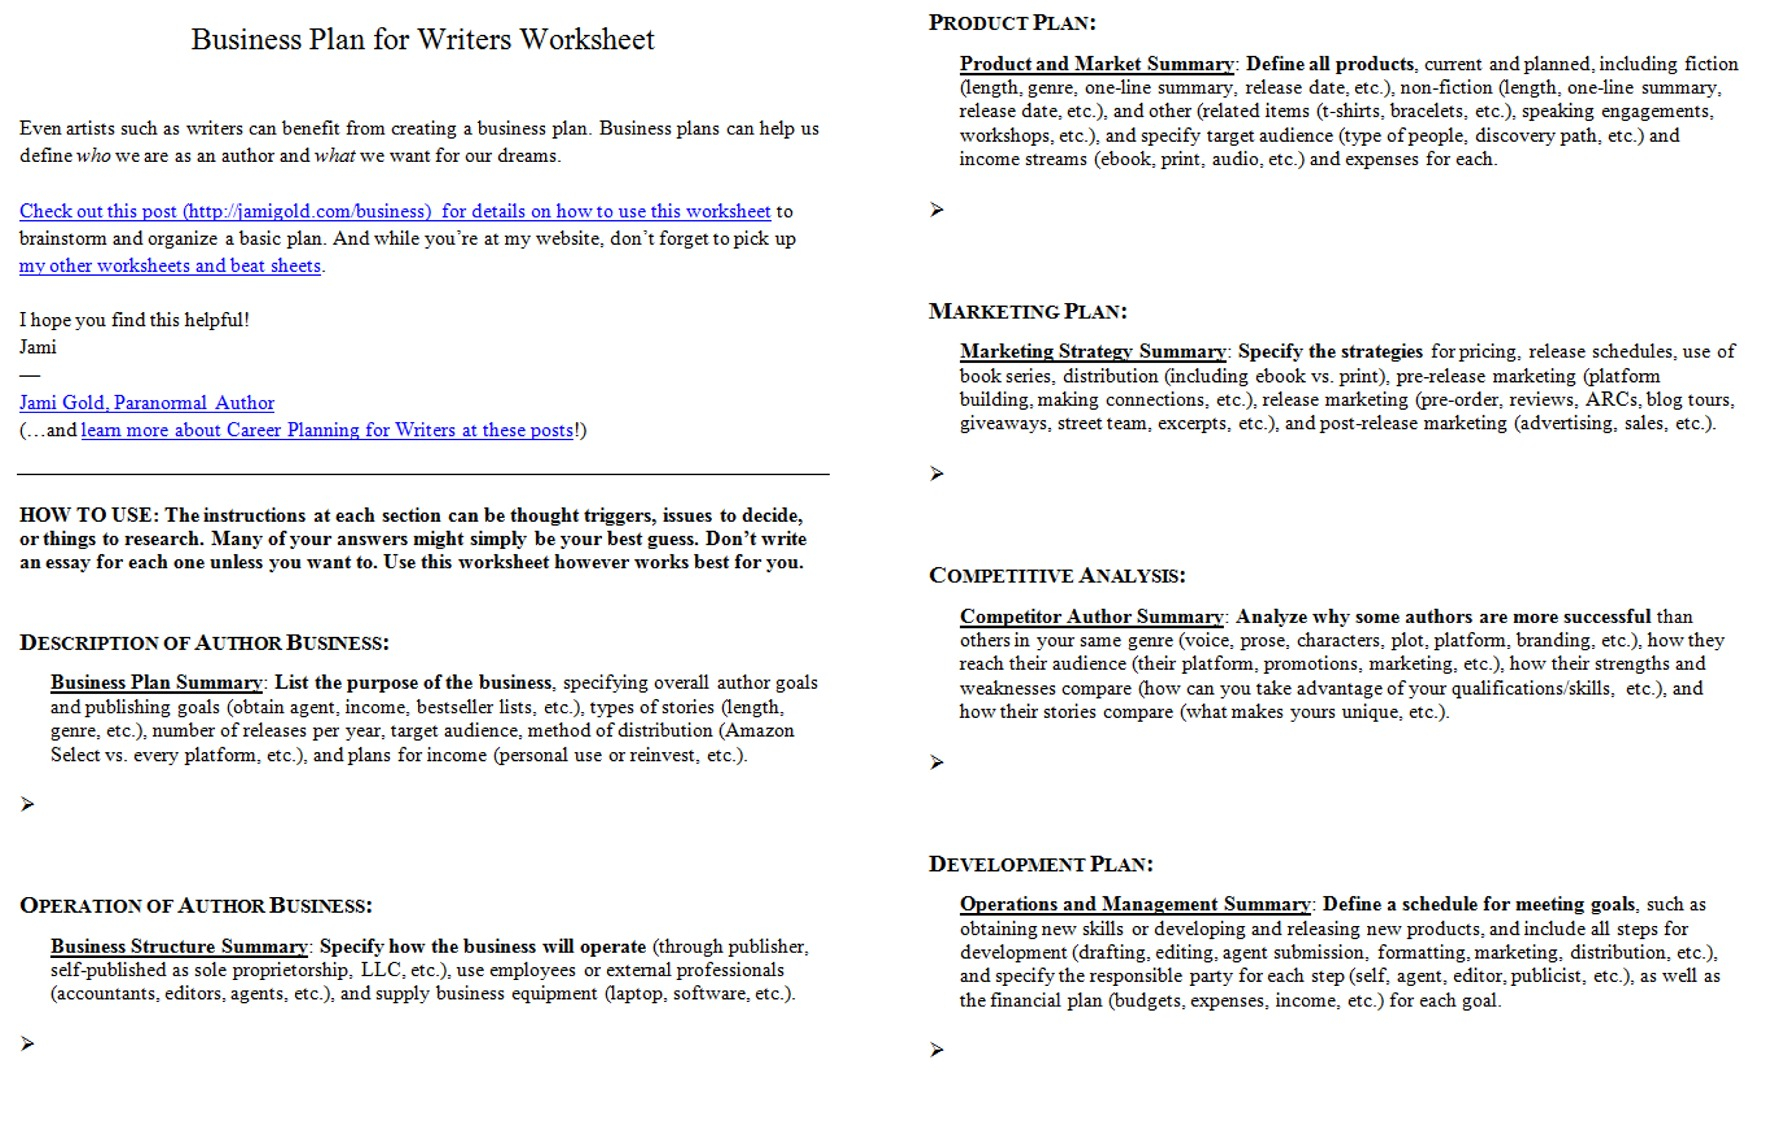 Aldiablosus  Winsome Worksheets For Writers  Jami Gold Paranormal Author With Entrancing Screen Shot Of Both Pages Of The Business Plan For Writers Worksheet With Divine Daily  Worksheets Also Free Square Root Worksheets In Addition Pizza Fractions Worksheets And Multiplying Decimals Worksheets Grade  As Well As  Little Pigs Worksheets Additionally Prefixes And Suffixes Quiz Worksheet From Jamigoldcom With Aldiablosus  Entrancing Worksheets For Writers  Jami Gold Paranormal Author With Divine Screen Shot Of Both Pages Of The Business Plan For Writers Worksheet And Winsome Daily  Worksheets Also Free Square Root Worksheets In Addition Pizza Fractions Worksheets From Jamigoldcom